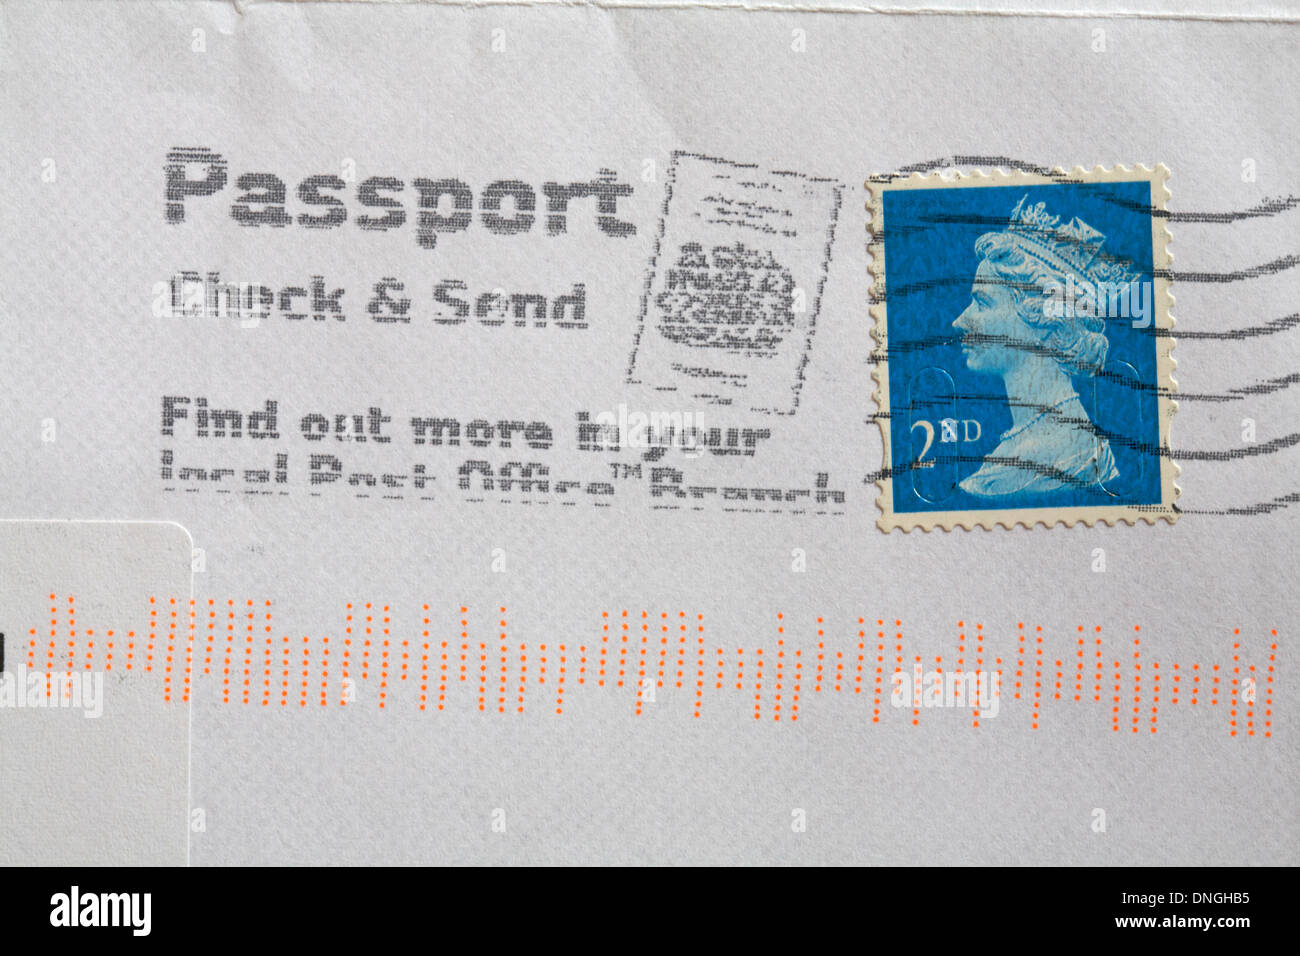 passport check & send find out more in your local Post Office branch stamp on envelope - Stock Image